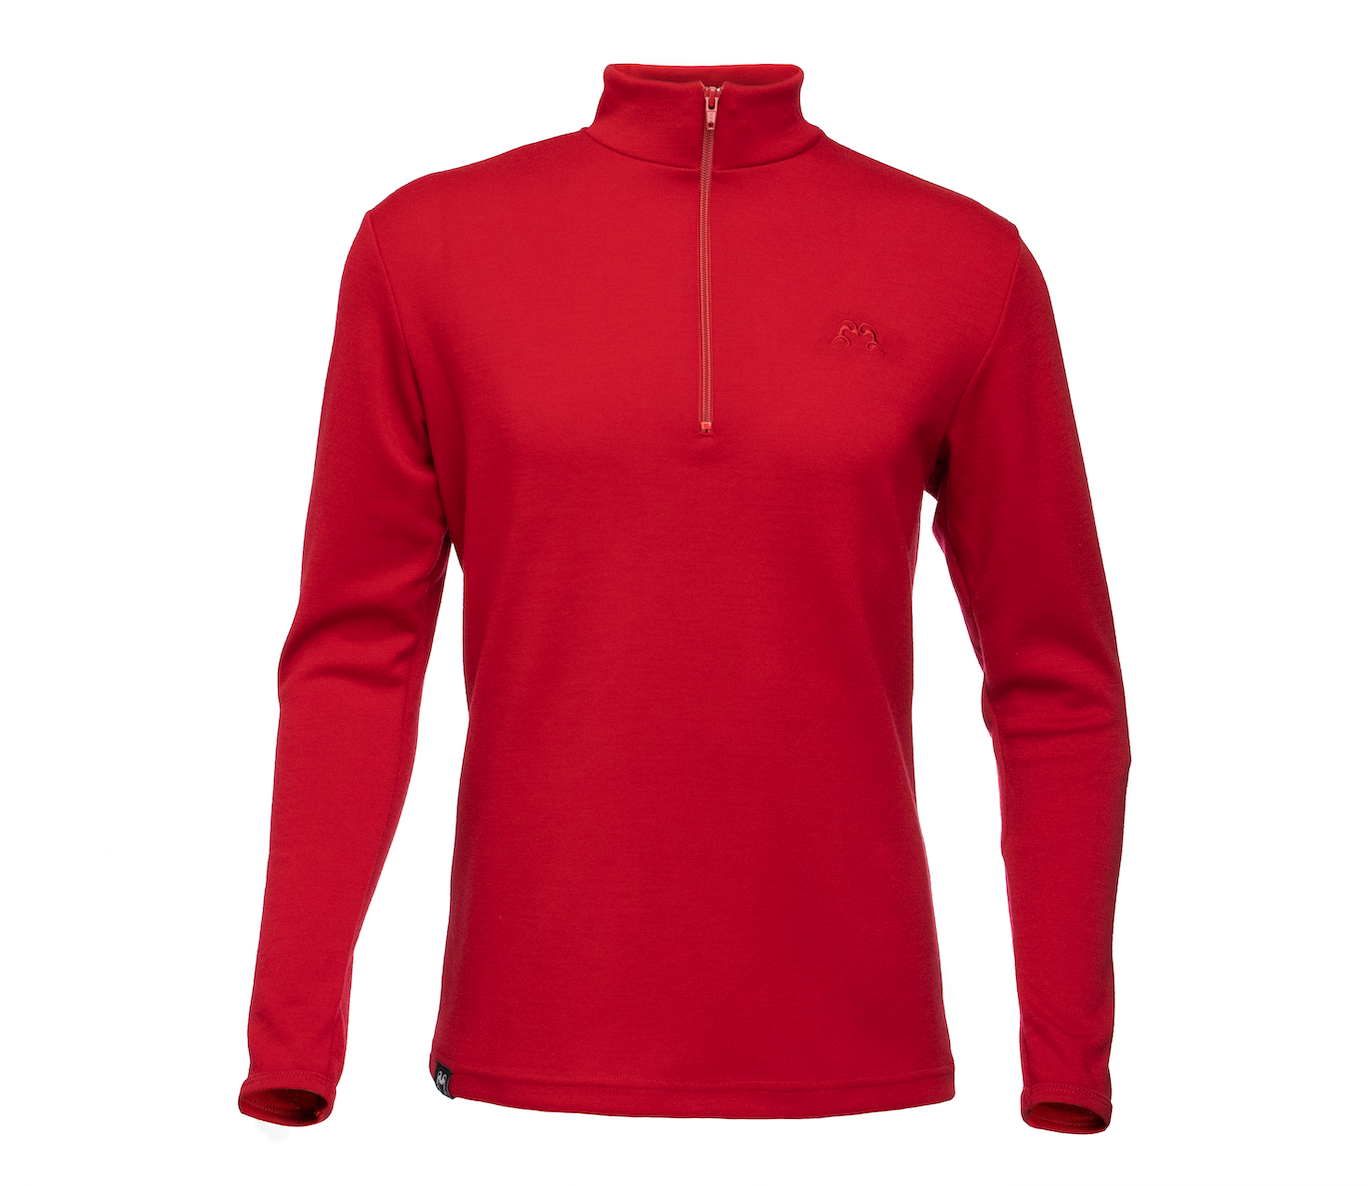 Men's merino wool 300 Coast quarter zip jersey